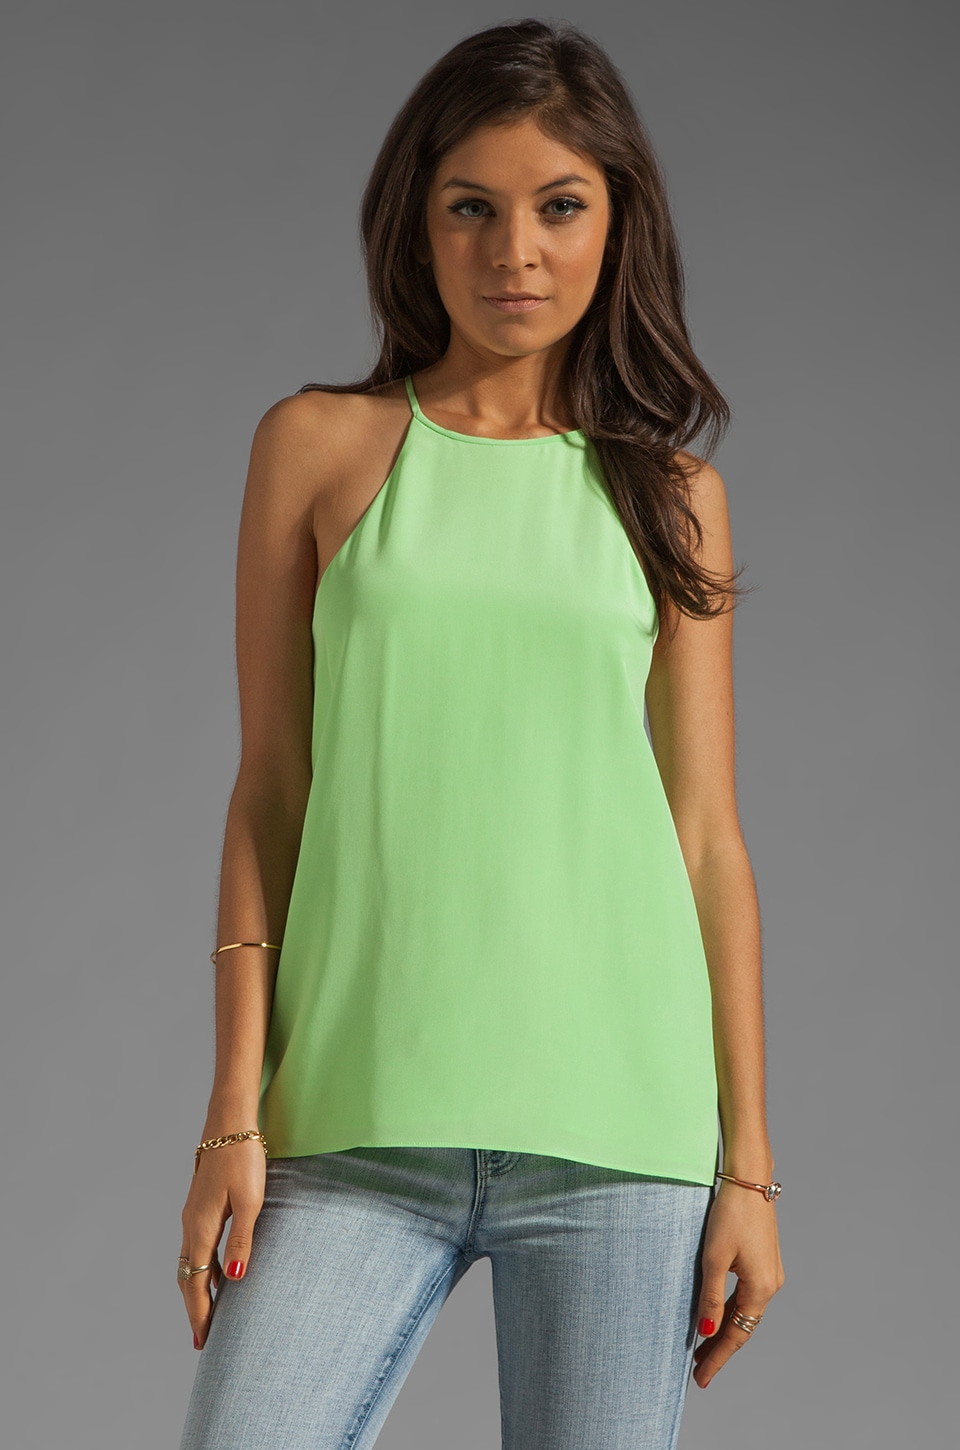 Tibi Solid Silk Halter in Neon Green